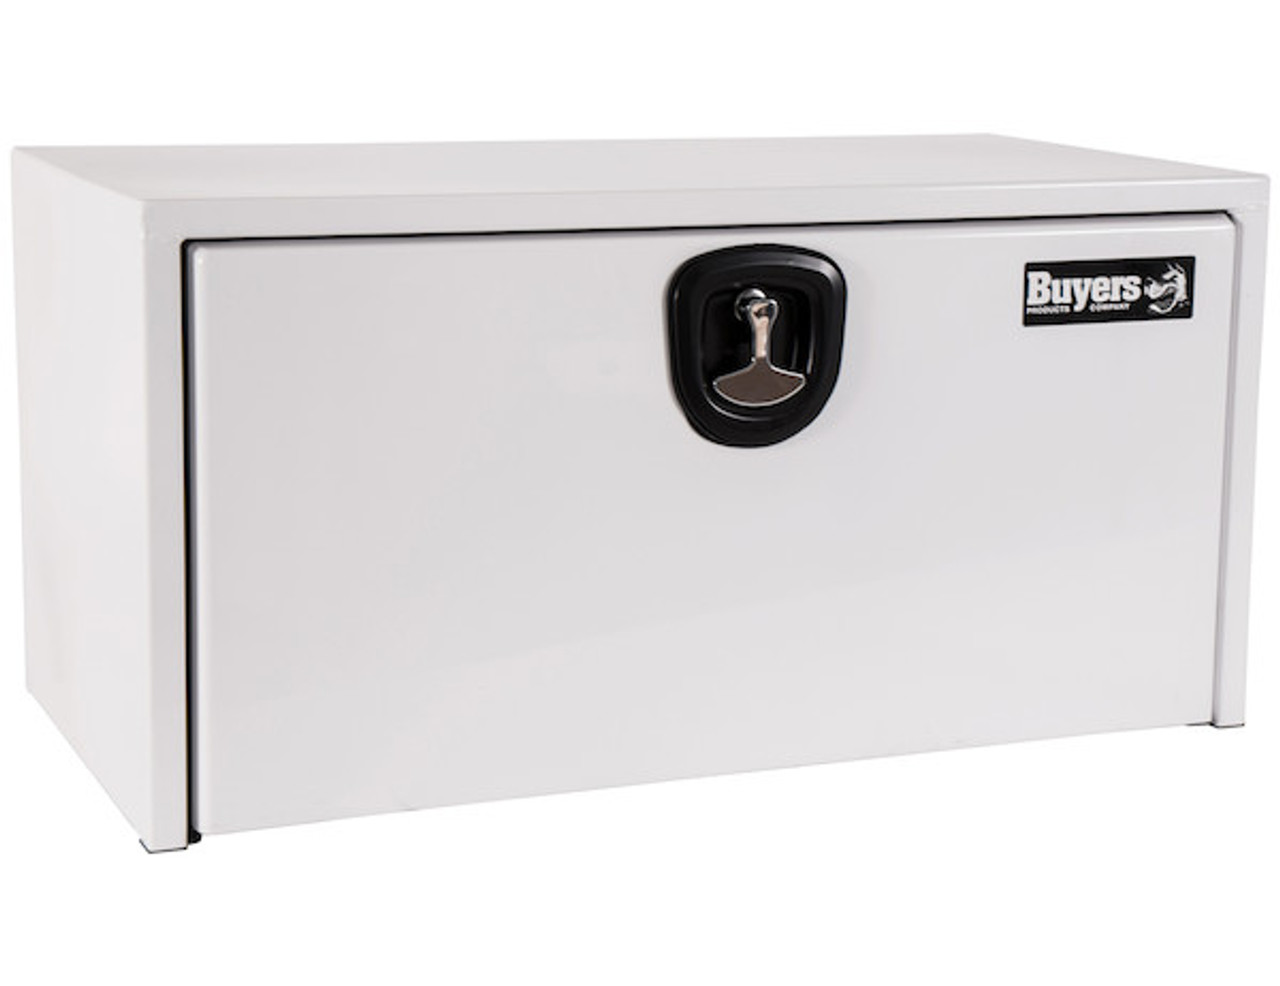 """1732400 BUYERS PRODUCTS WHITE STEEL UNDERBODY TRUCK TOOLBOX WITH 3-POINT LATCH 18""""Hx18""""Dx24""""W"""